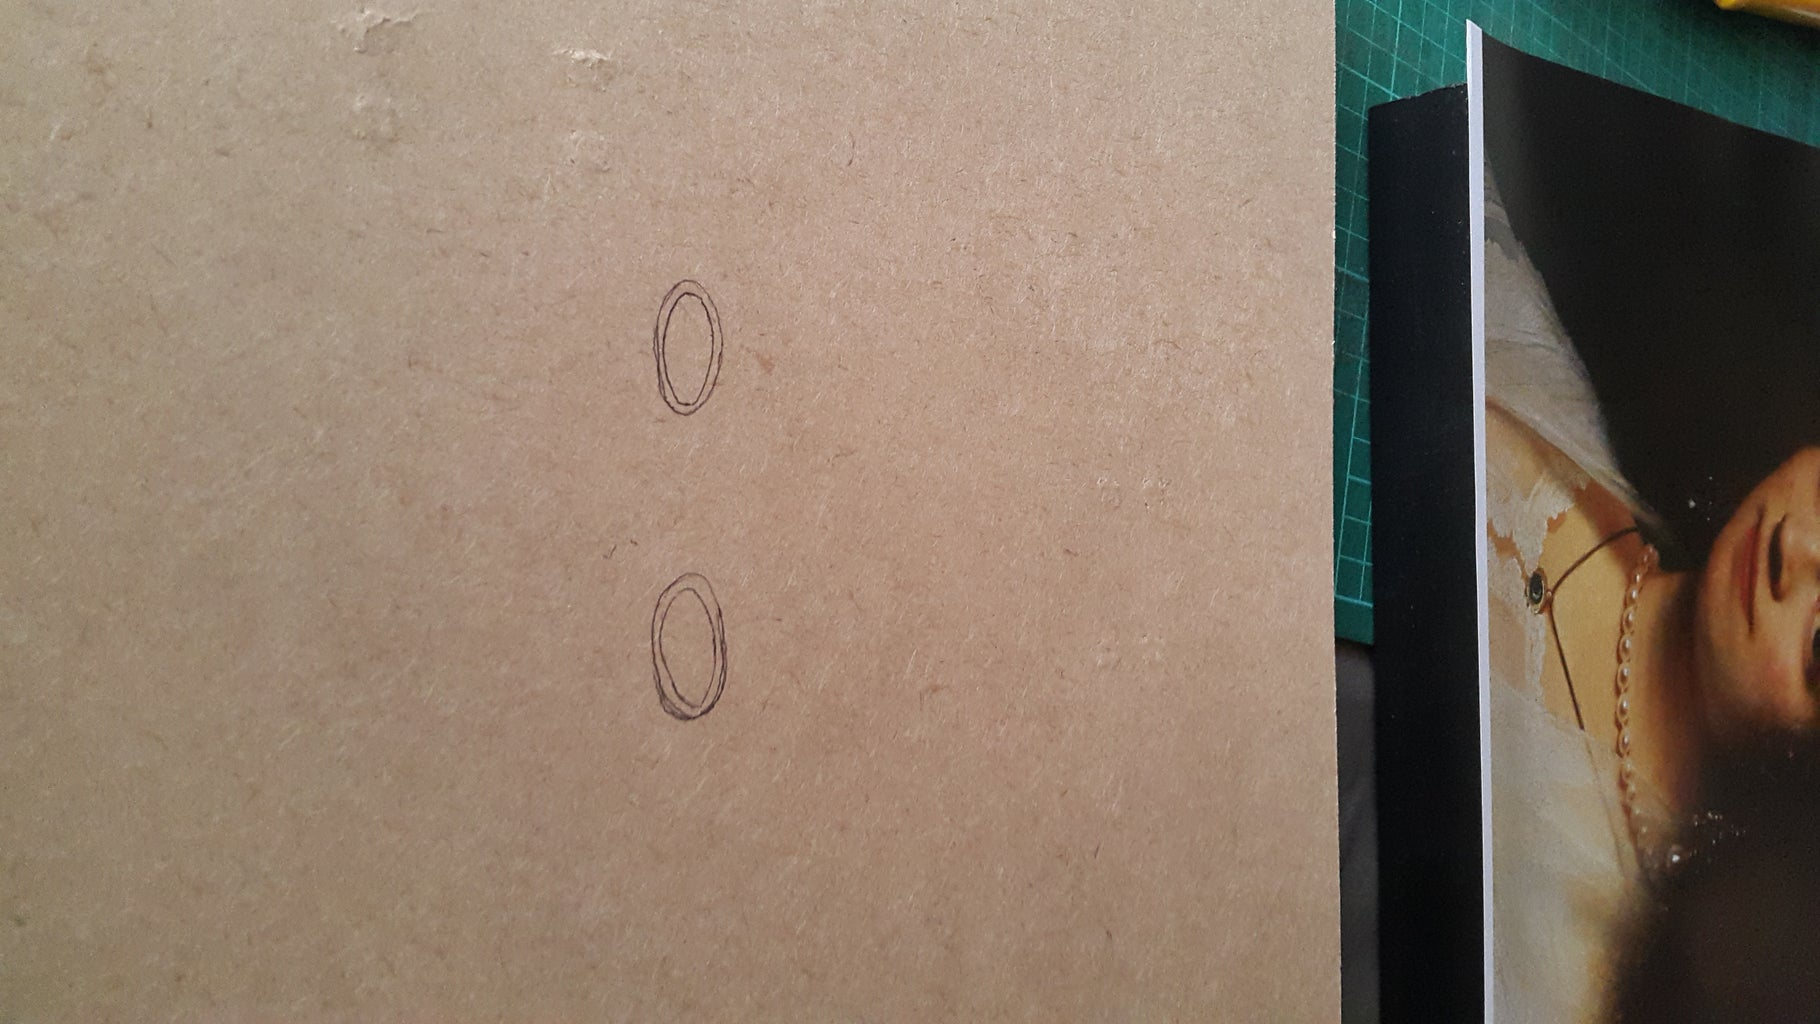 Cut Out the Eyes From the Backing Board